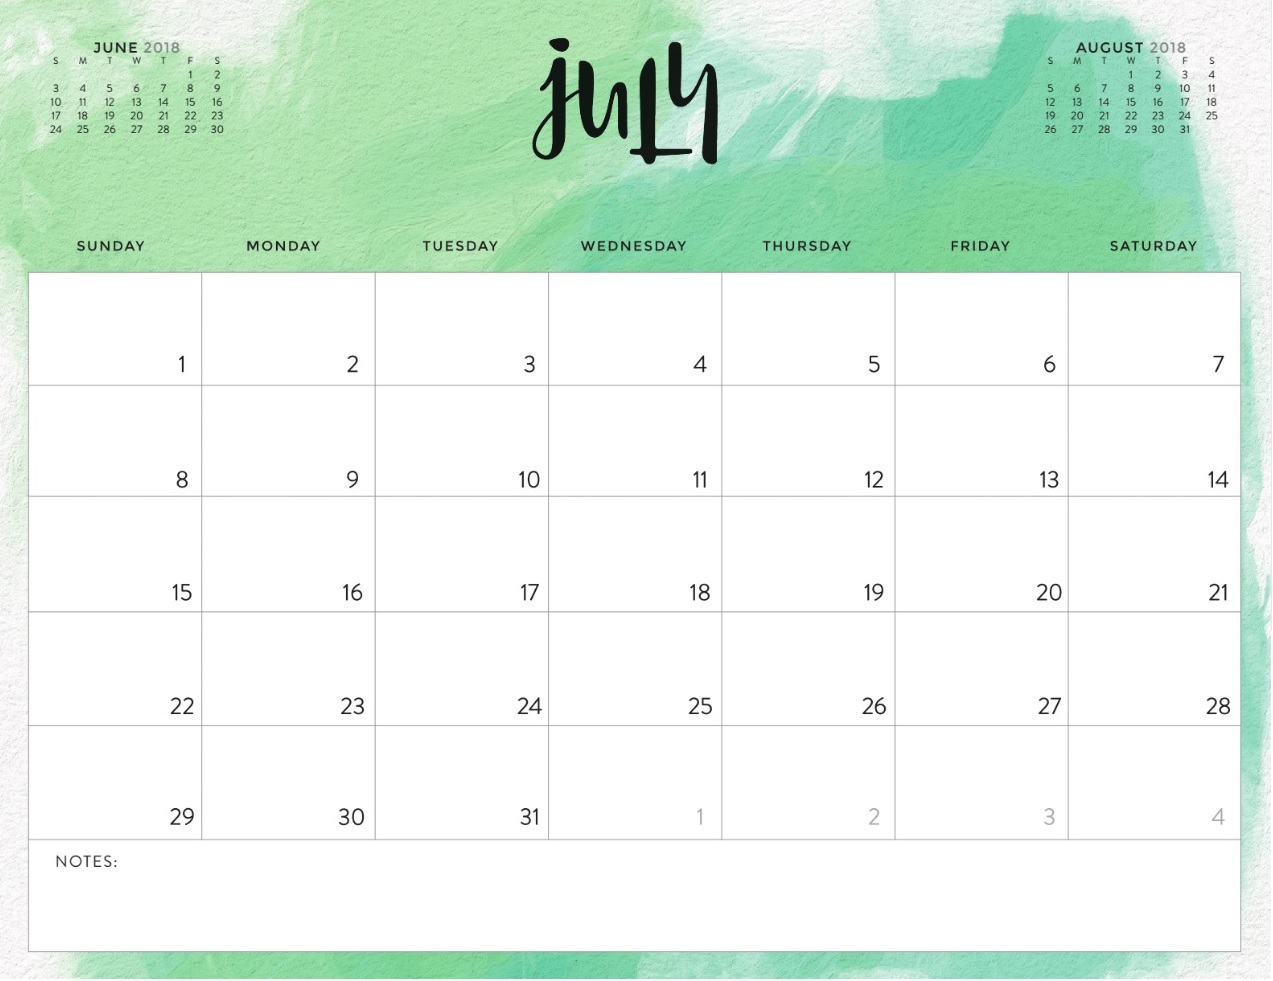 July 2018 Colorful Calendar For Office Desk